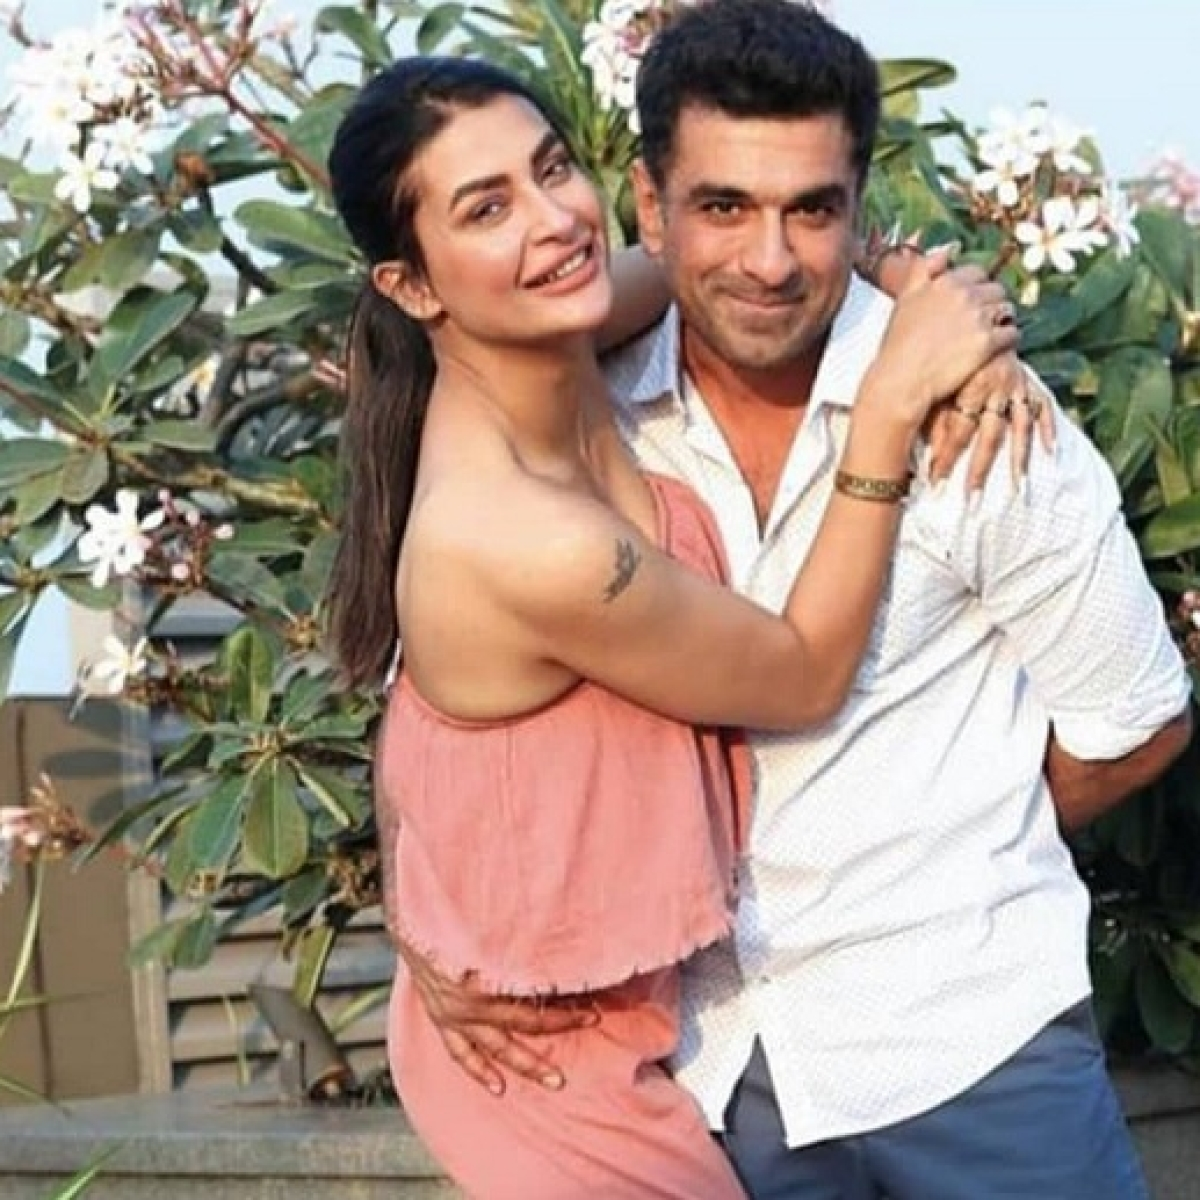 'We are in a very happy space right now': Eijaz Khan on his relationship with Pavitra Punia